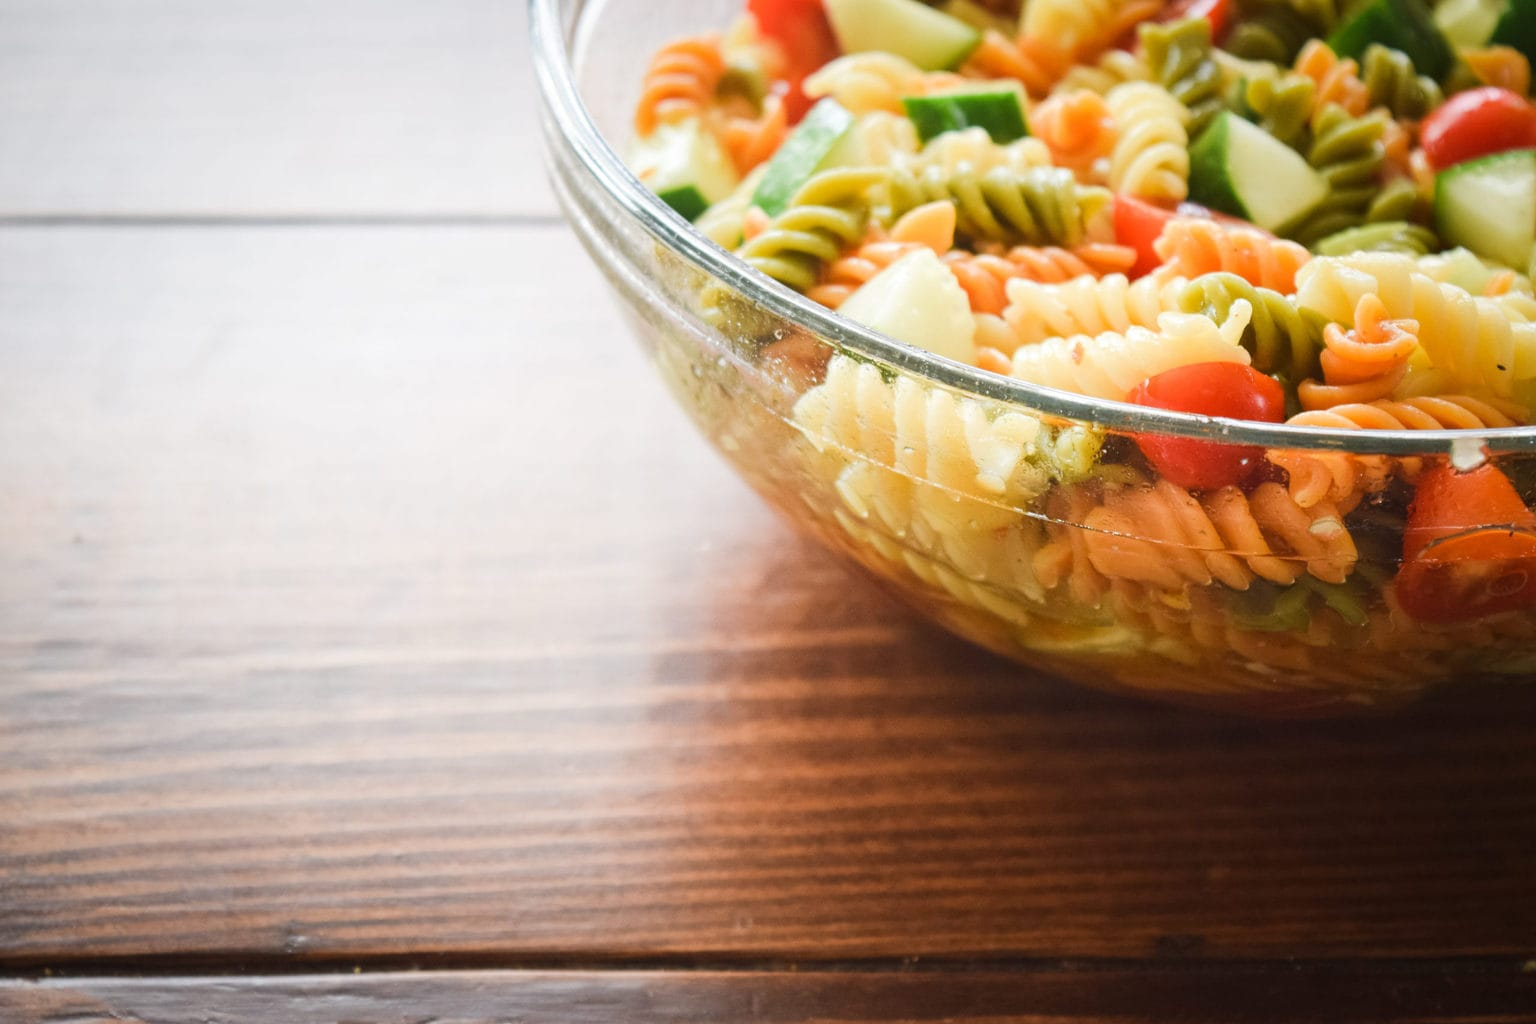 World's Easiest Pasta Salad Recipe by This Little Home of Mine